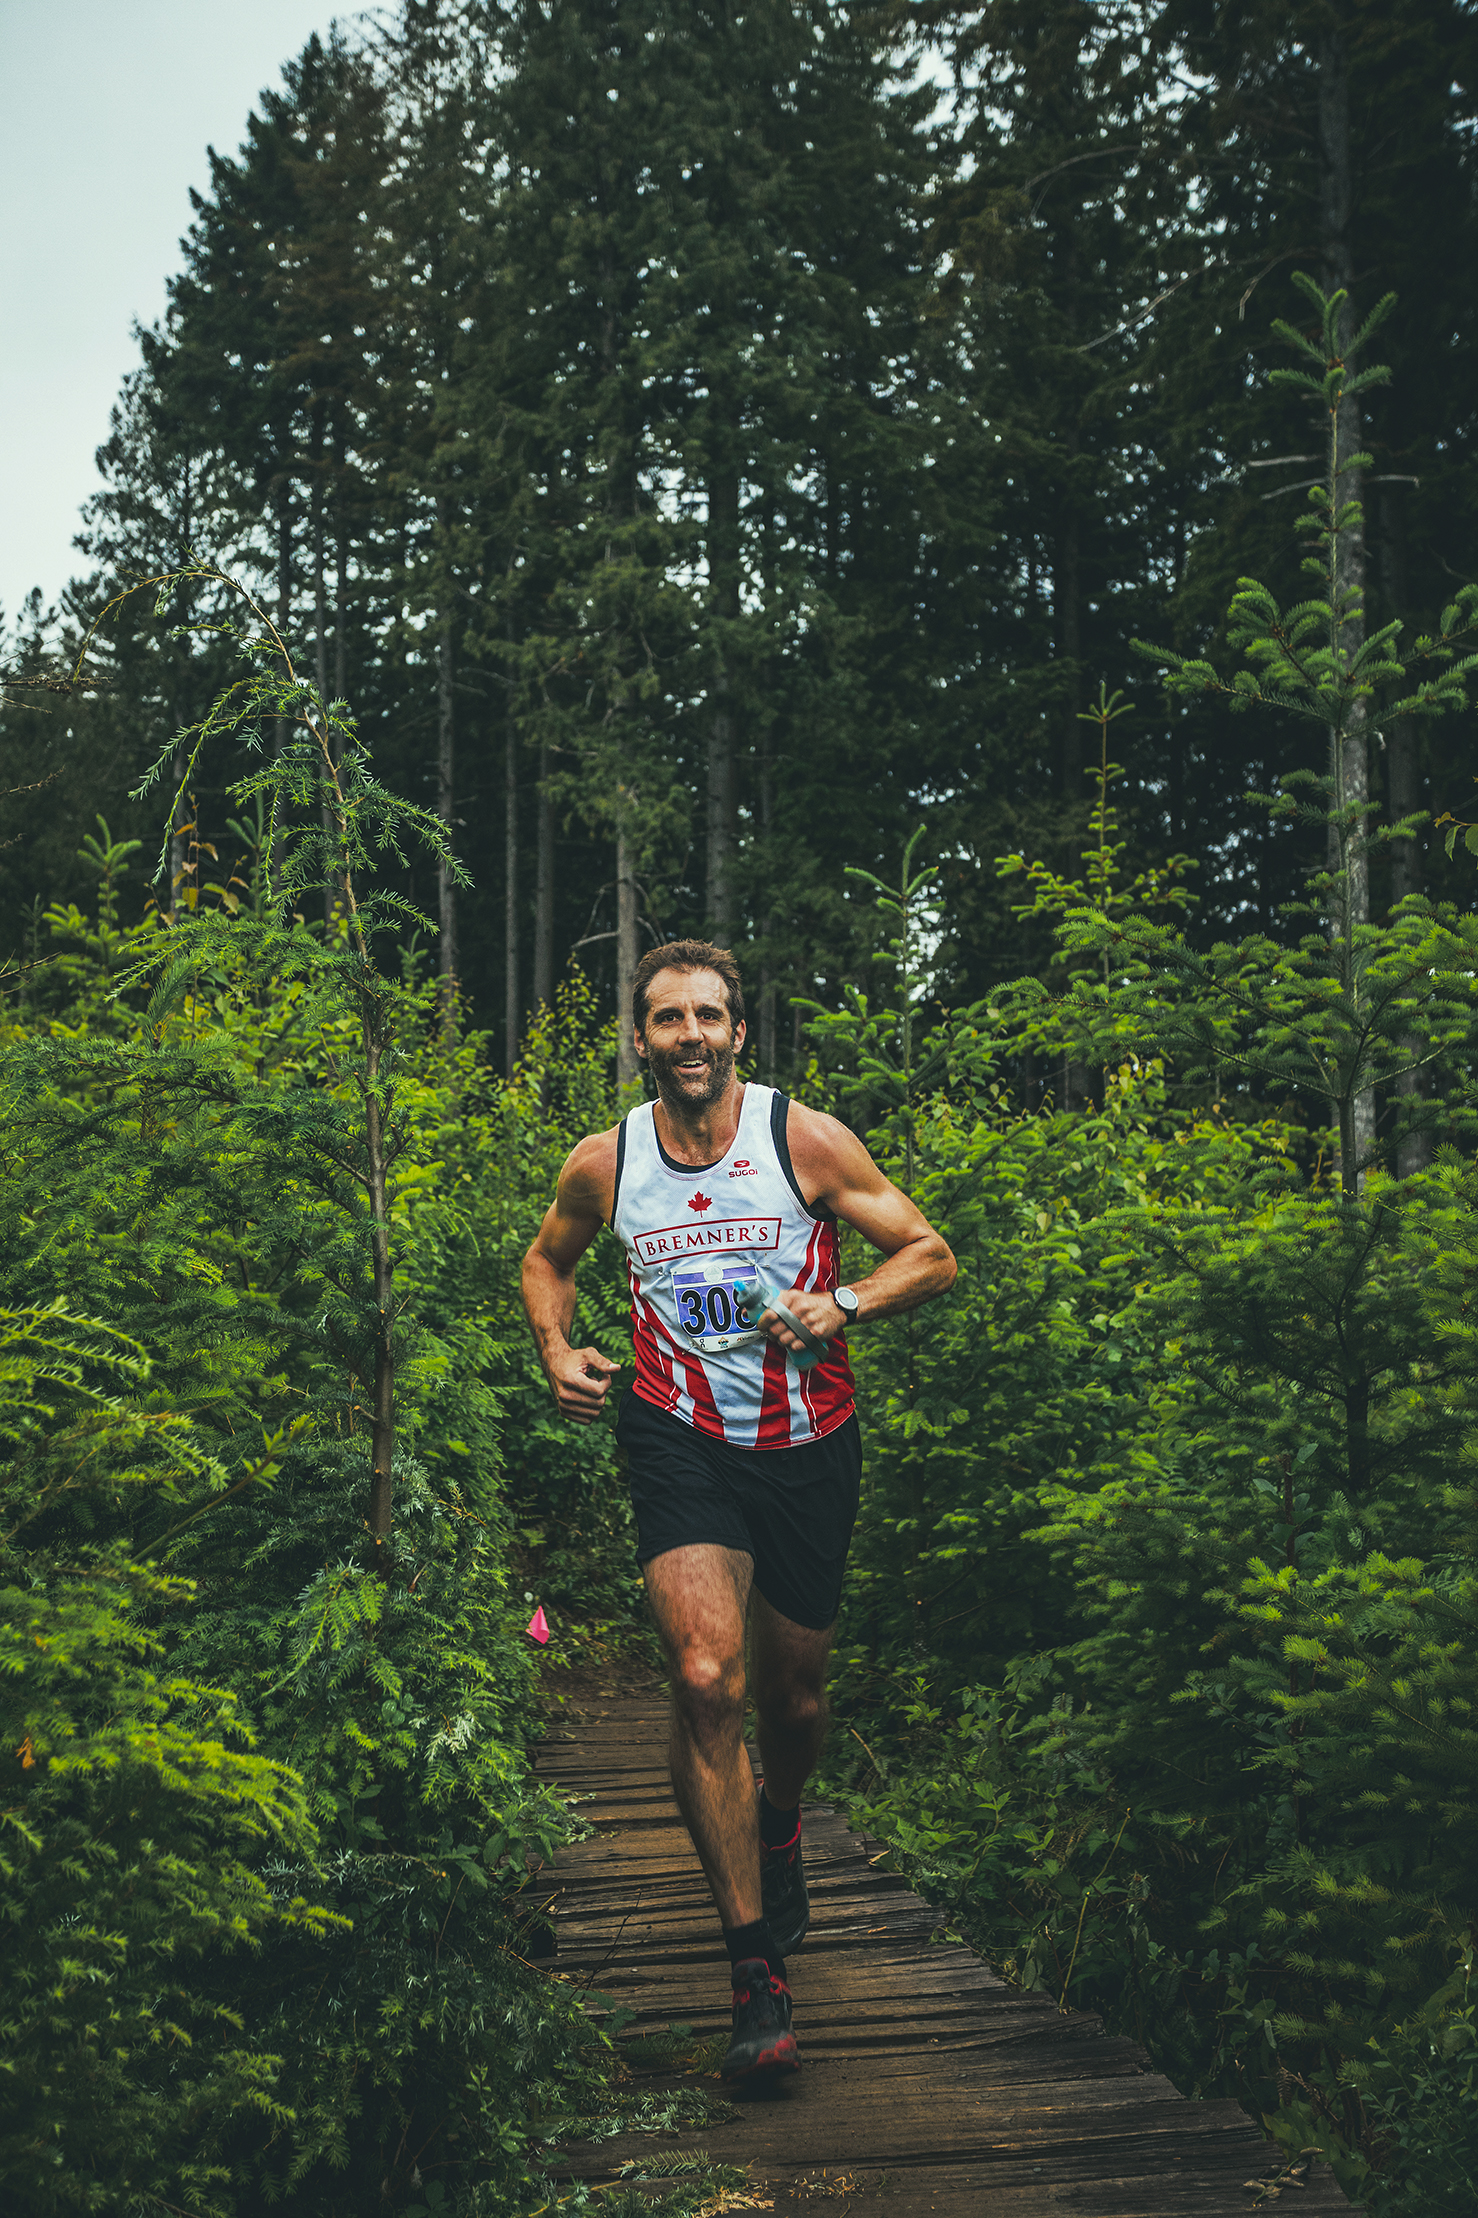 Fraser Valley Trail Races - Bear Mountain - IMG_1461 by Brice Ferre Studio - Vancouver Portrait Adventure and Athlete Photographer.jpg